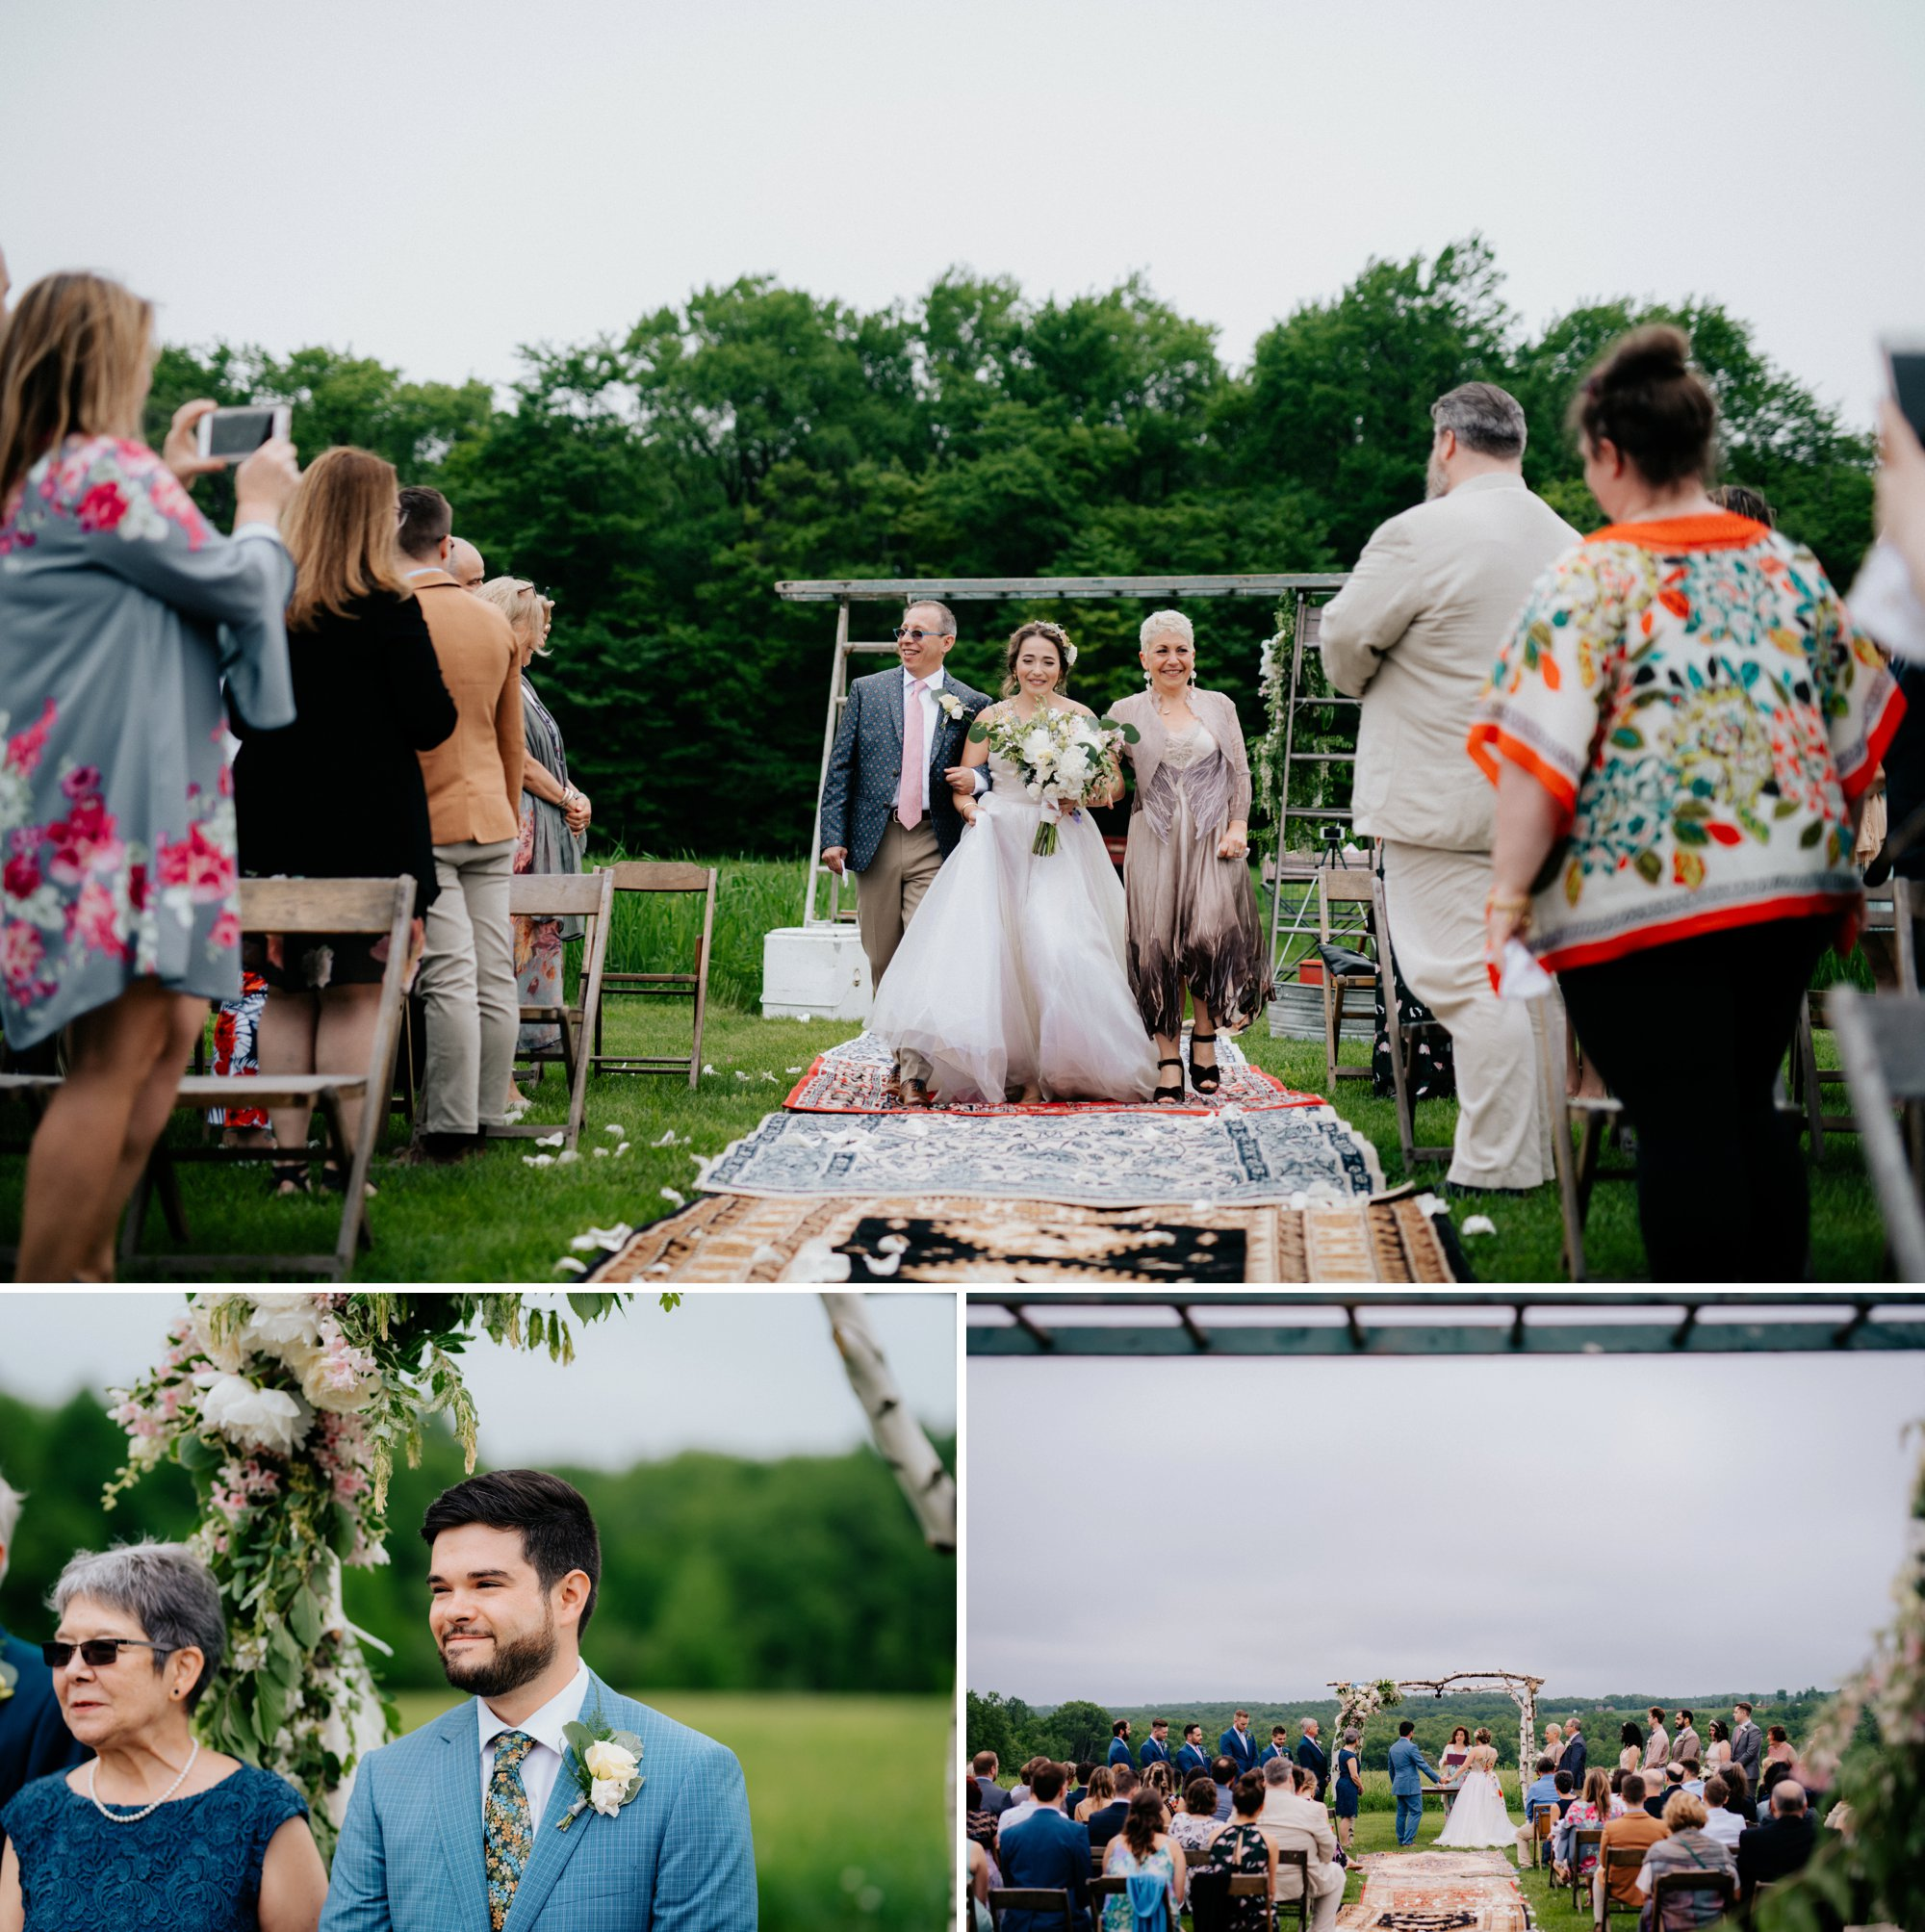 Fiddle Lake Farm Philadelphia Pennsylvania Misty Rustic Wedding with Lush Florals Processional